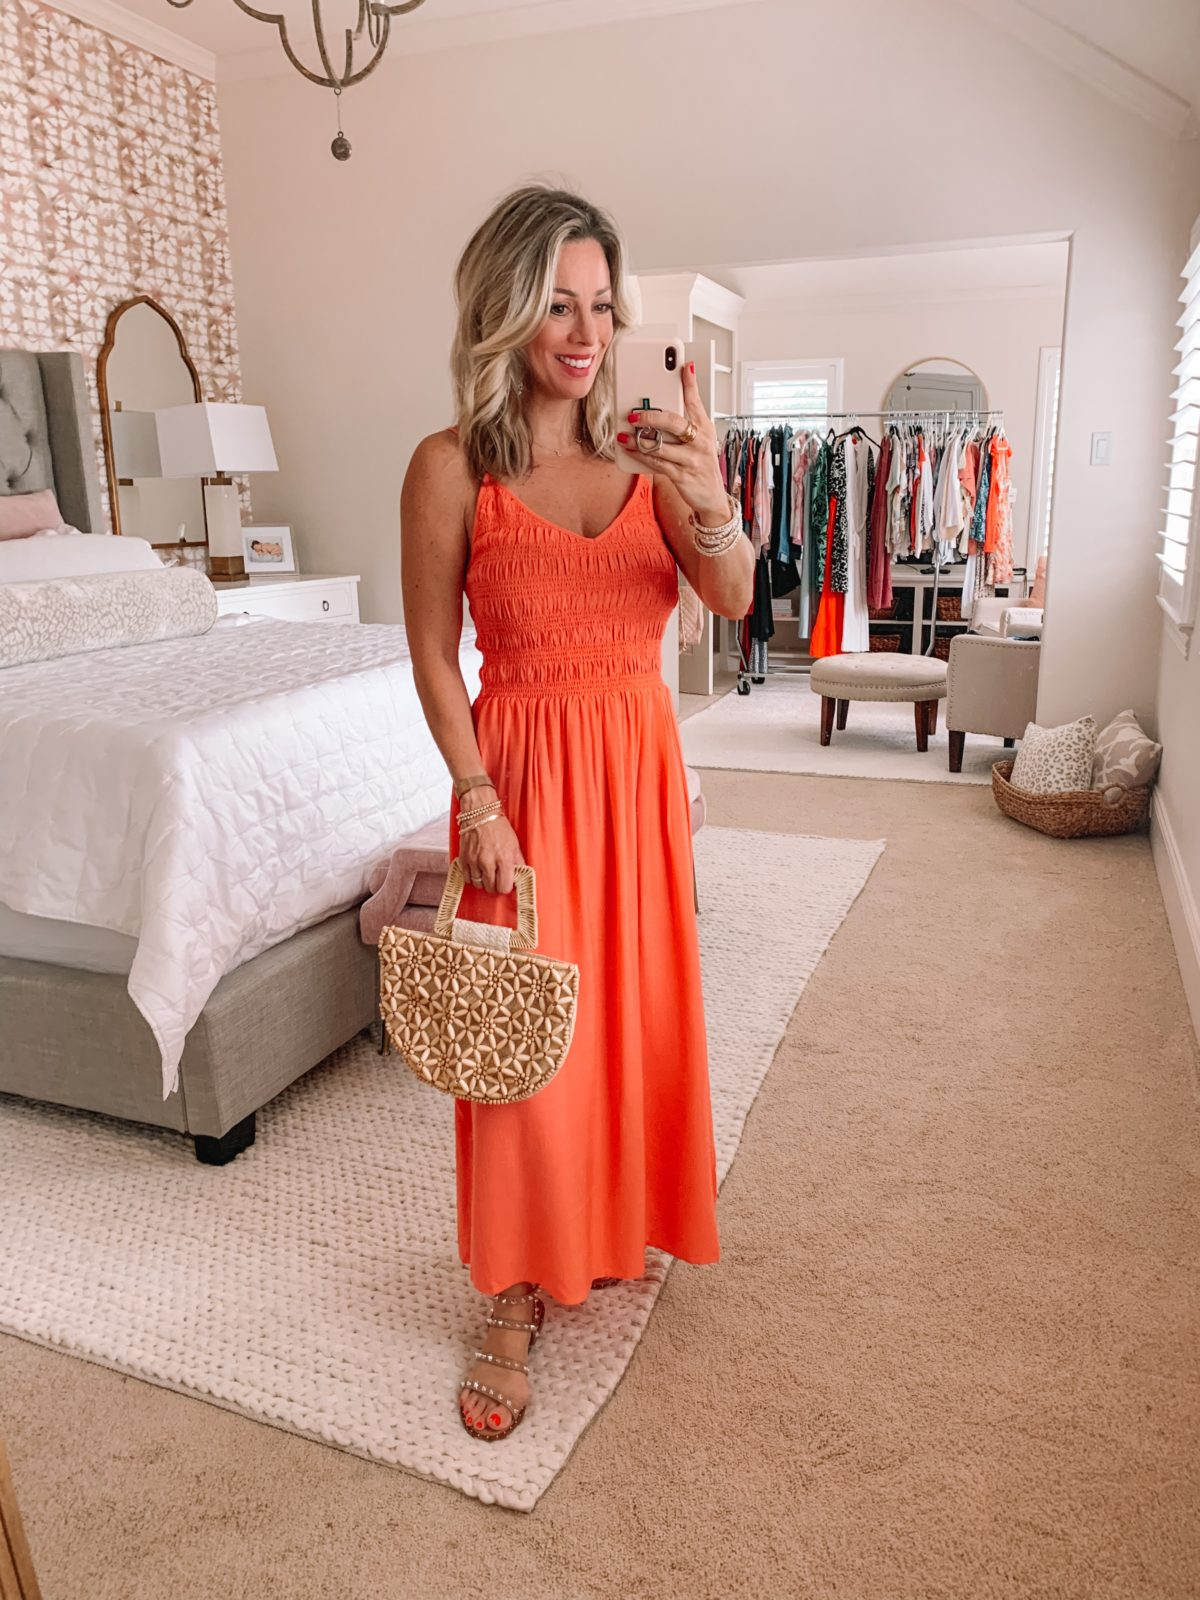 Dressing Room Finds Nordstrom and Target, Smocked Top Maxi Dress, Studded Sandals